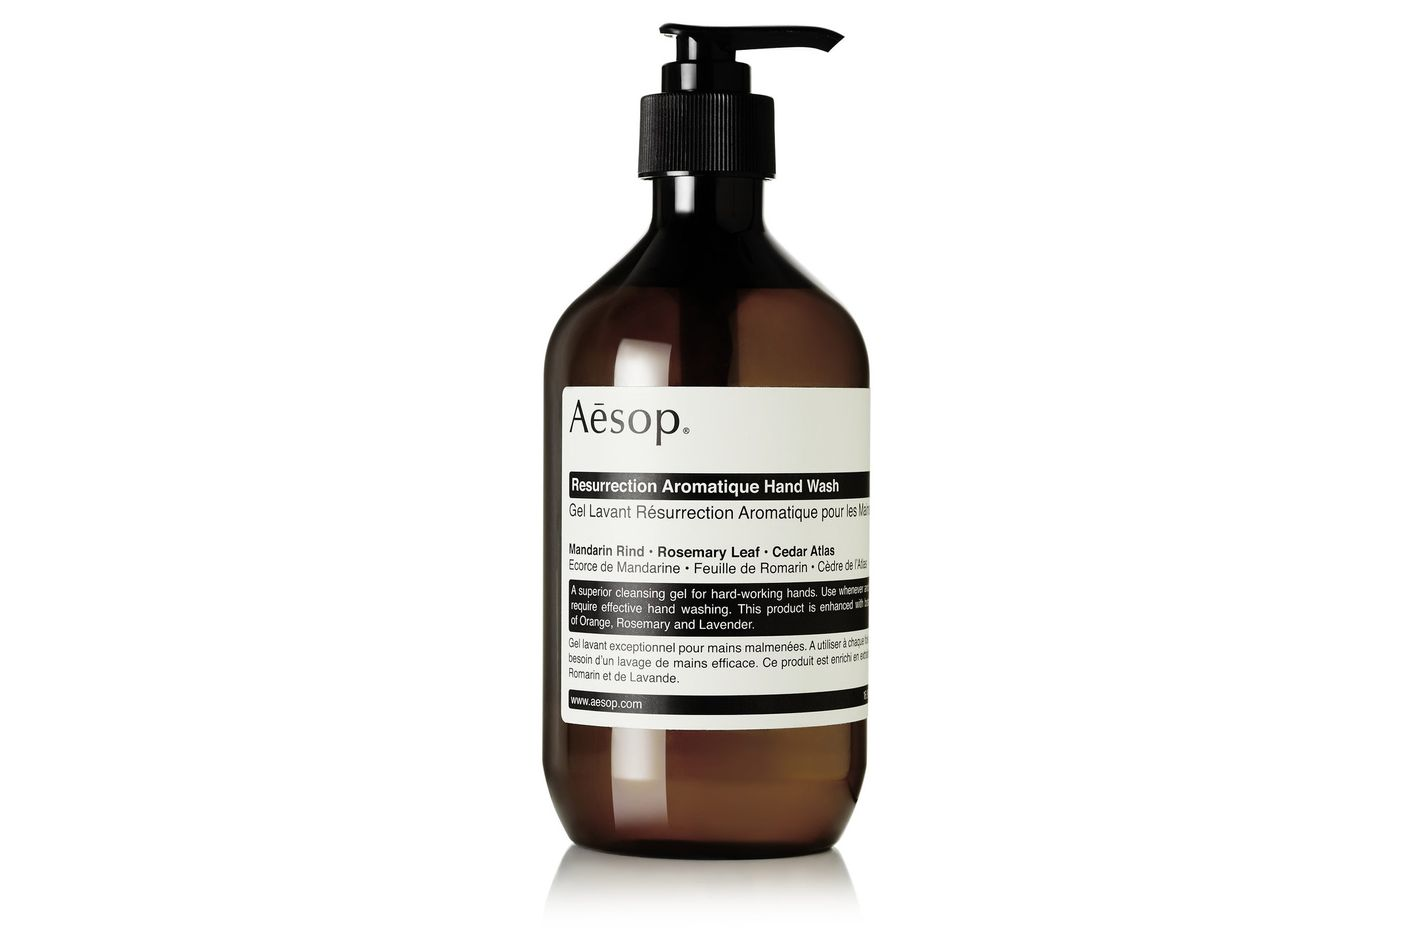 Aesop Resurrection Hand Soap